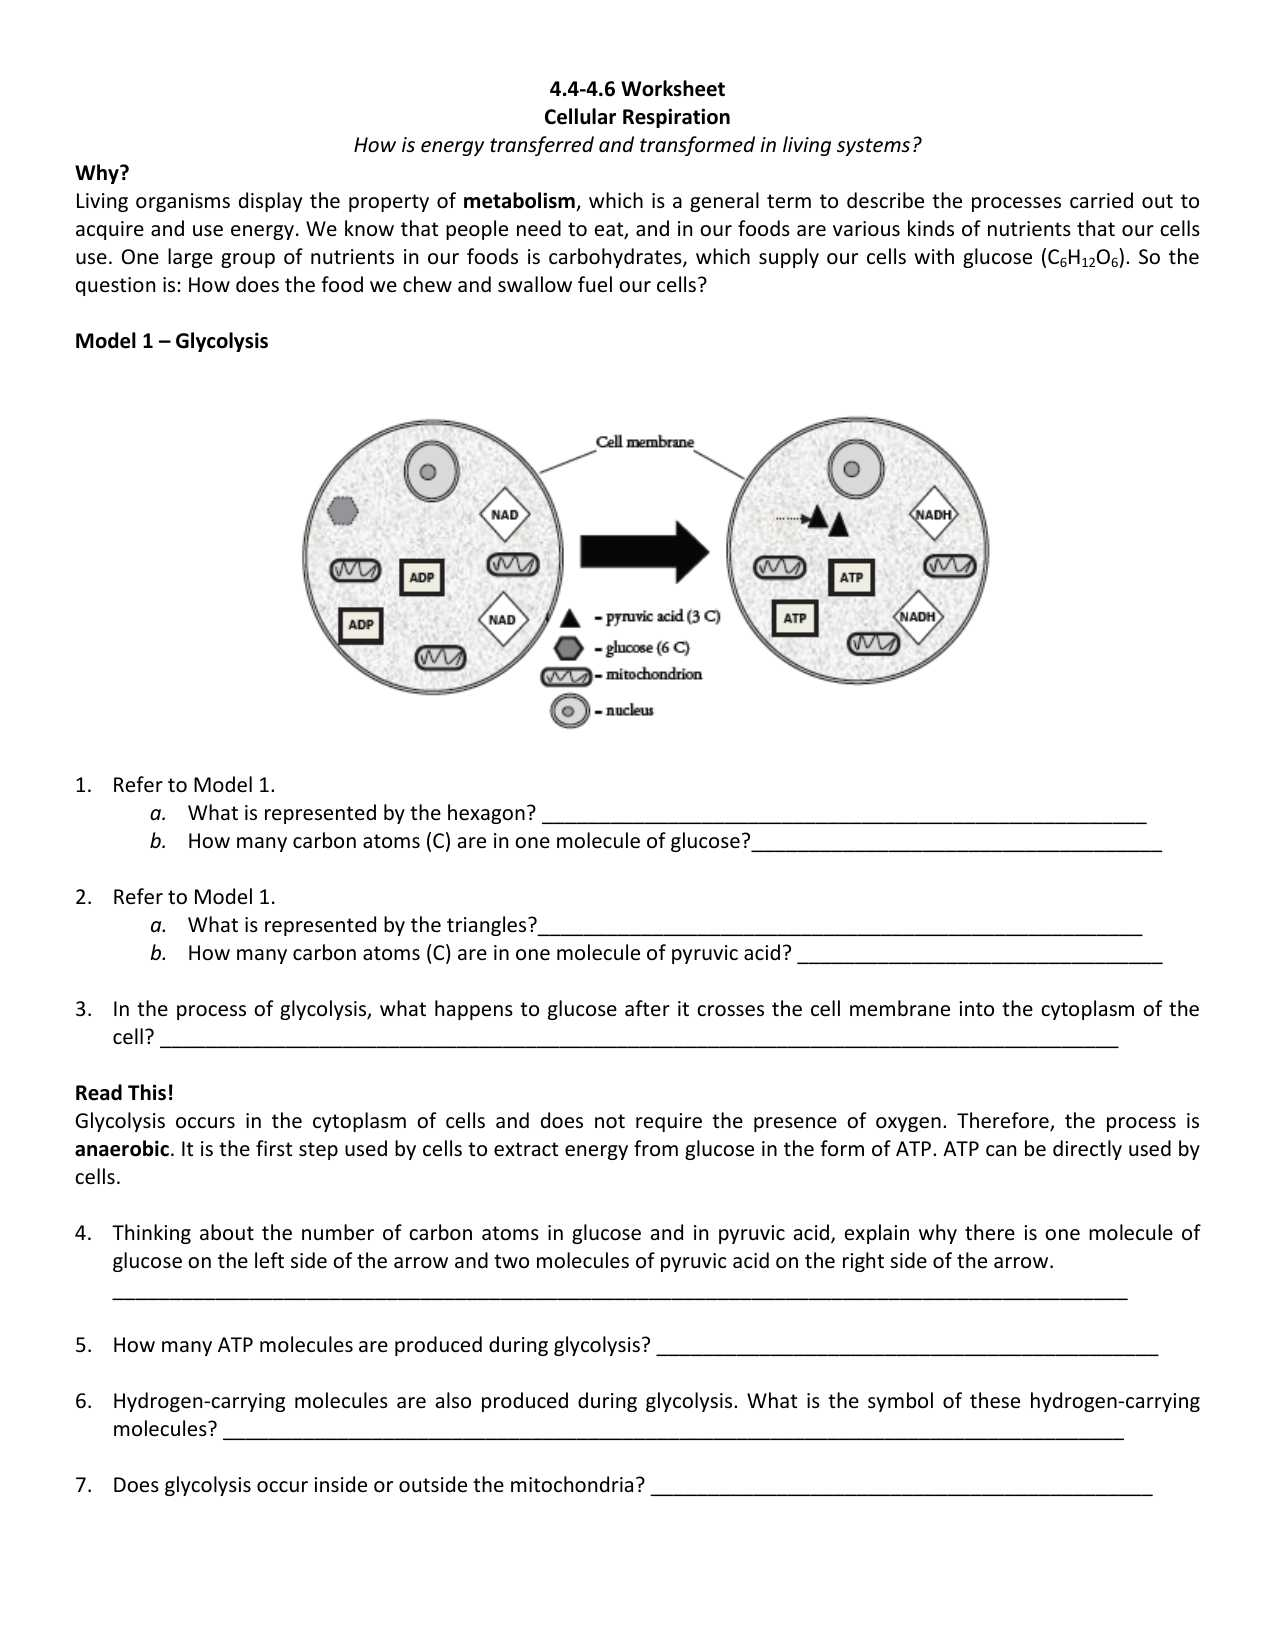 Photosynthesis and Cellular Respiration Review Worksheet Answer Key together with Worksheet Energy Transfer Worksheets Middle School Carlos Lomas